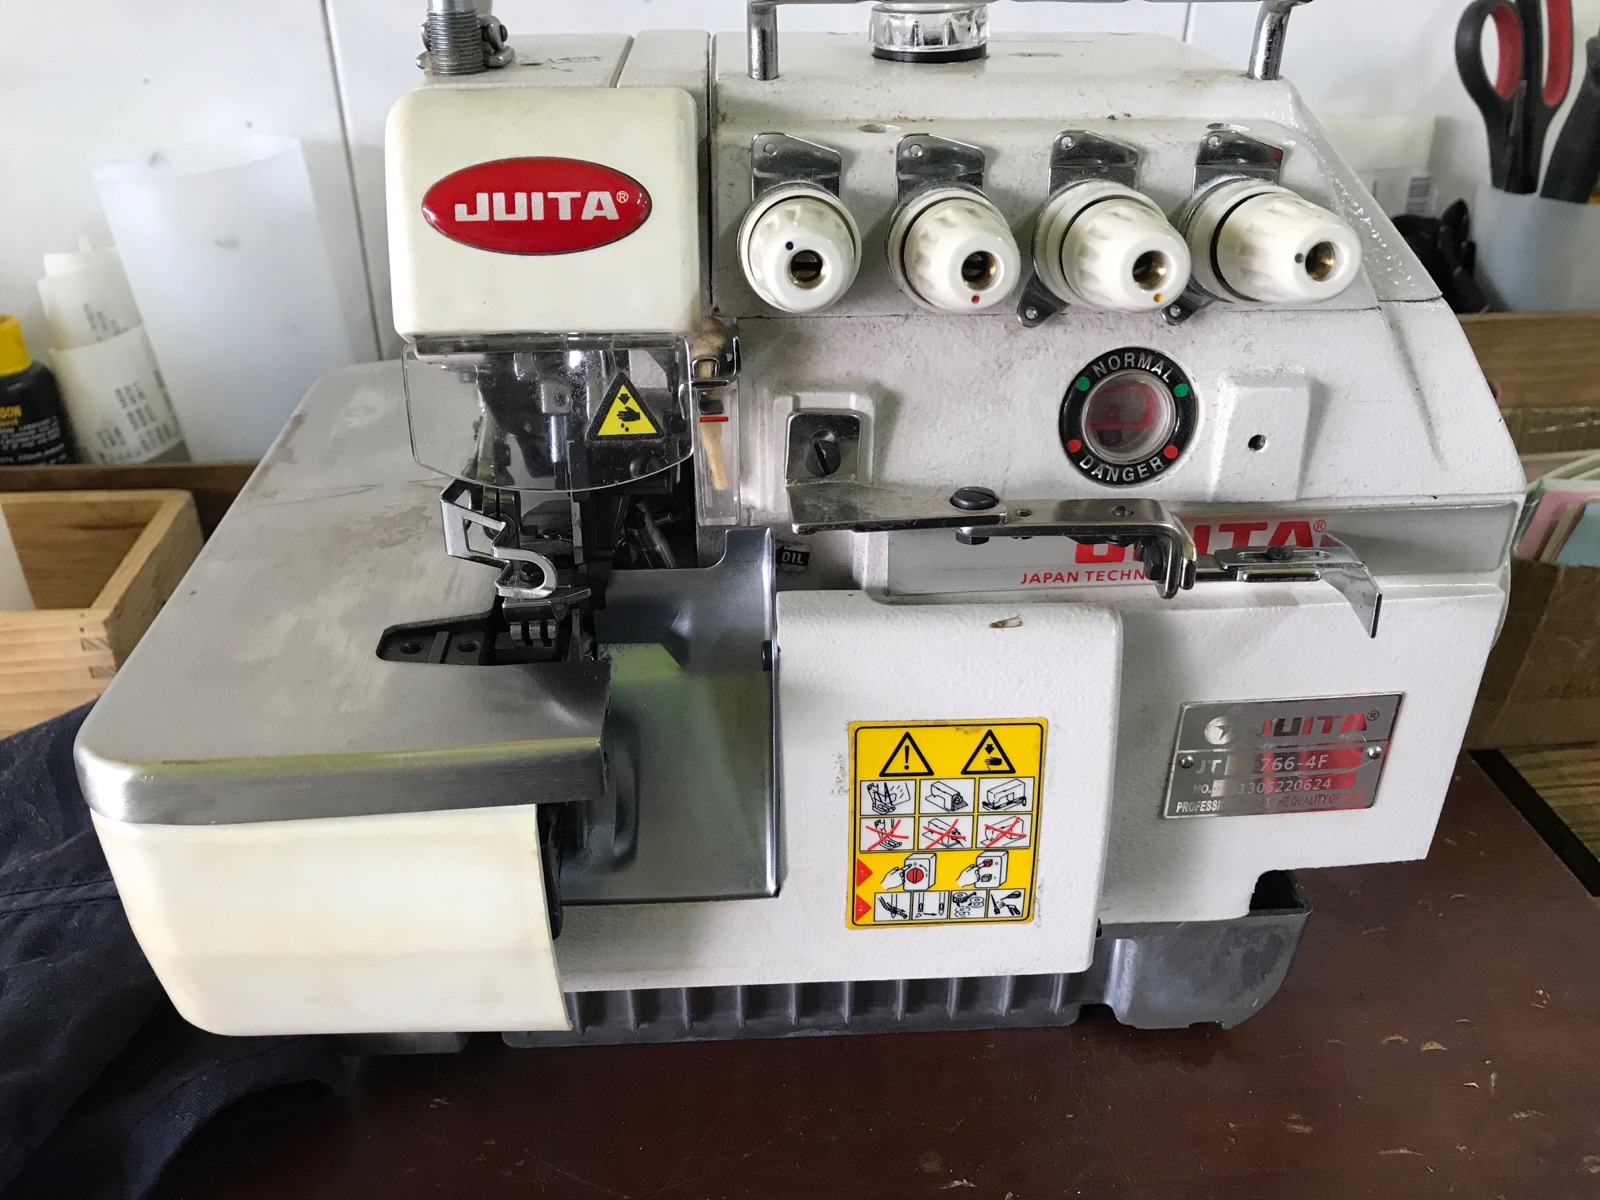 Junta Overlock Sewing Machine